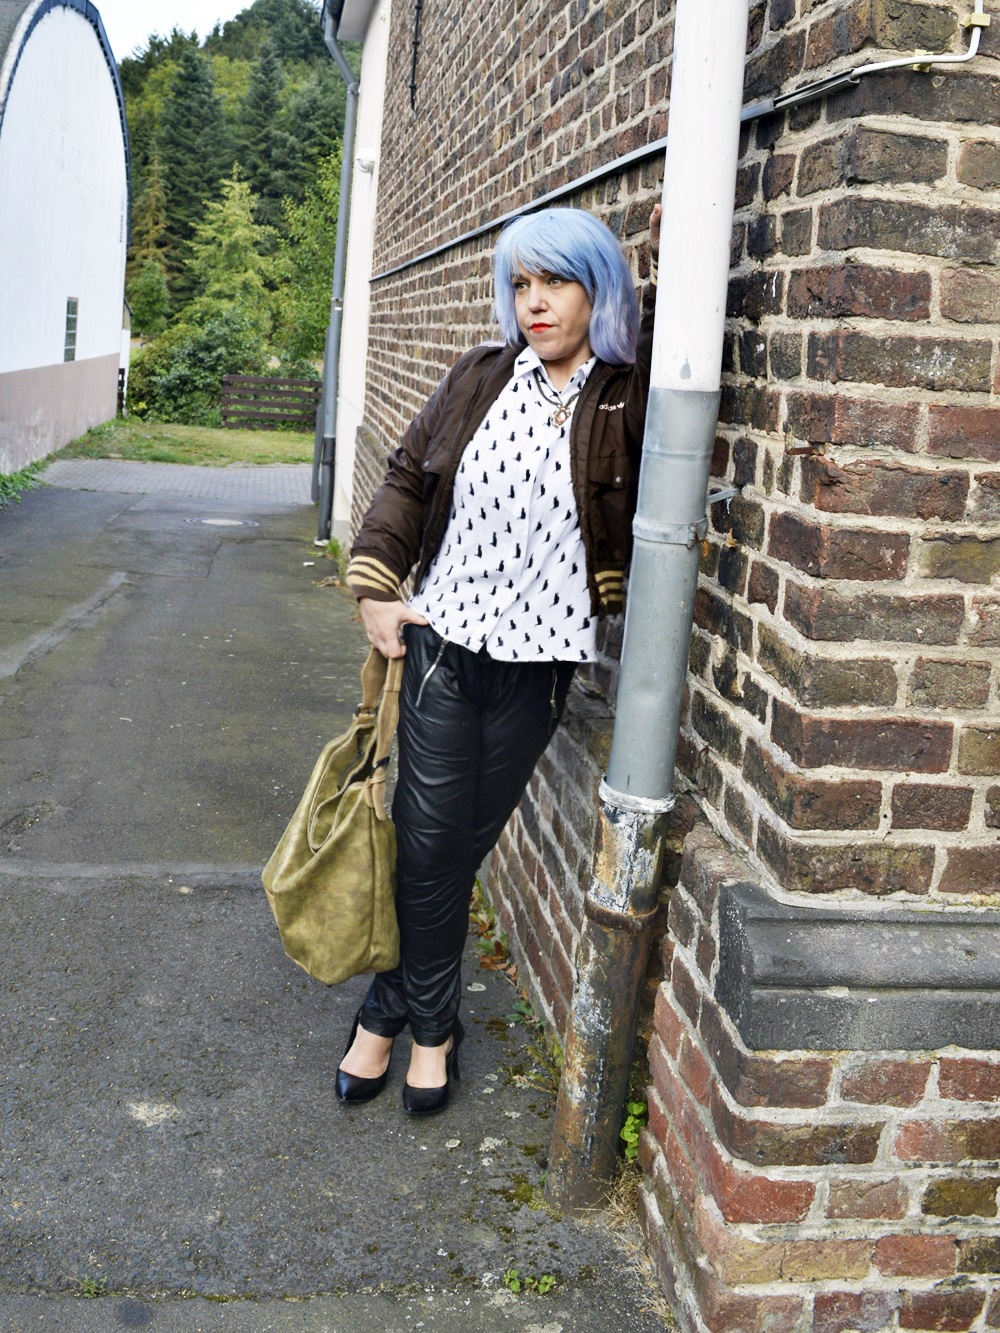 Autumn Streetstyle with Blouse & Retro adidas Blouson - Outfit photo shoot for the complete Weeken